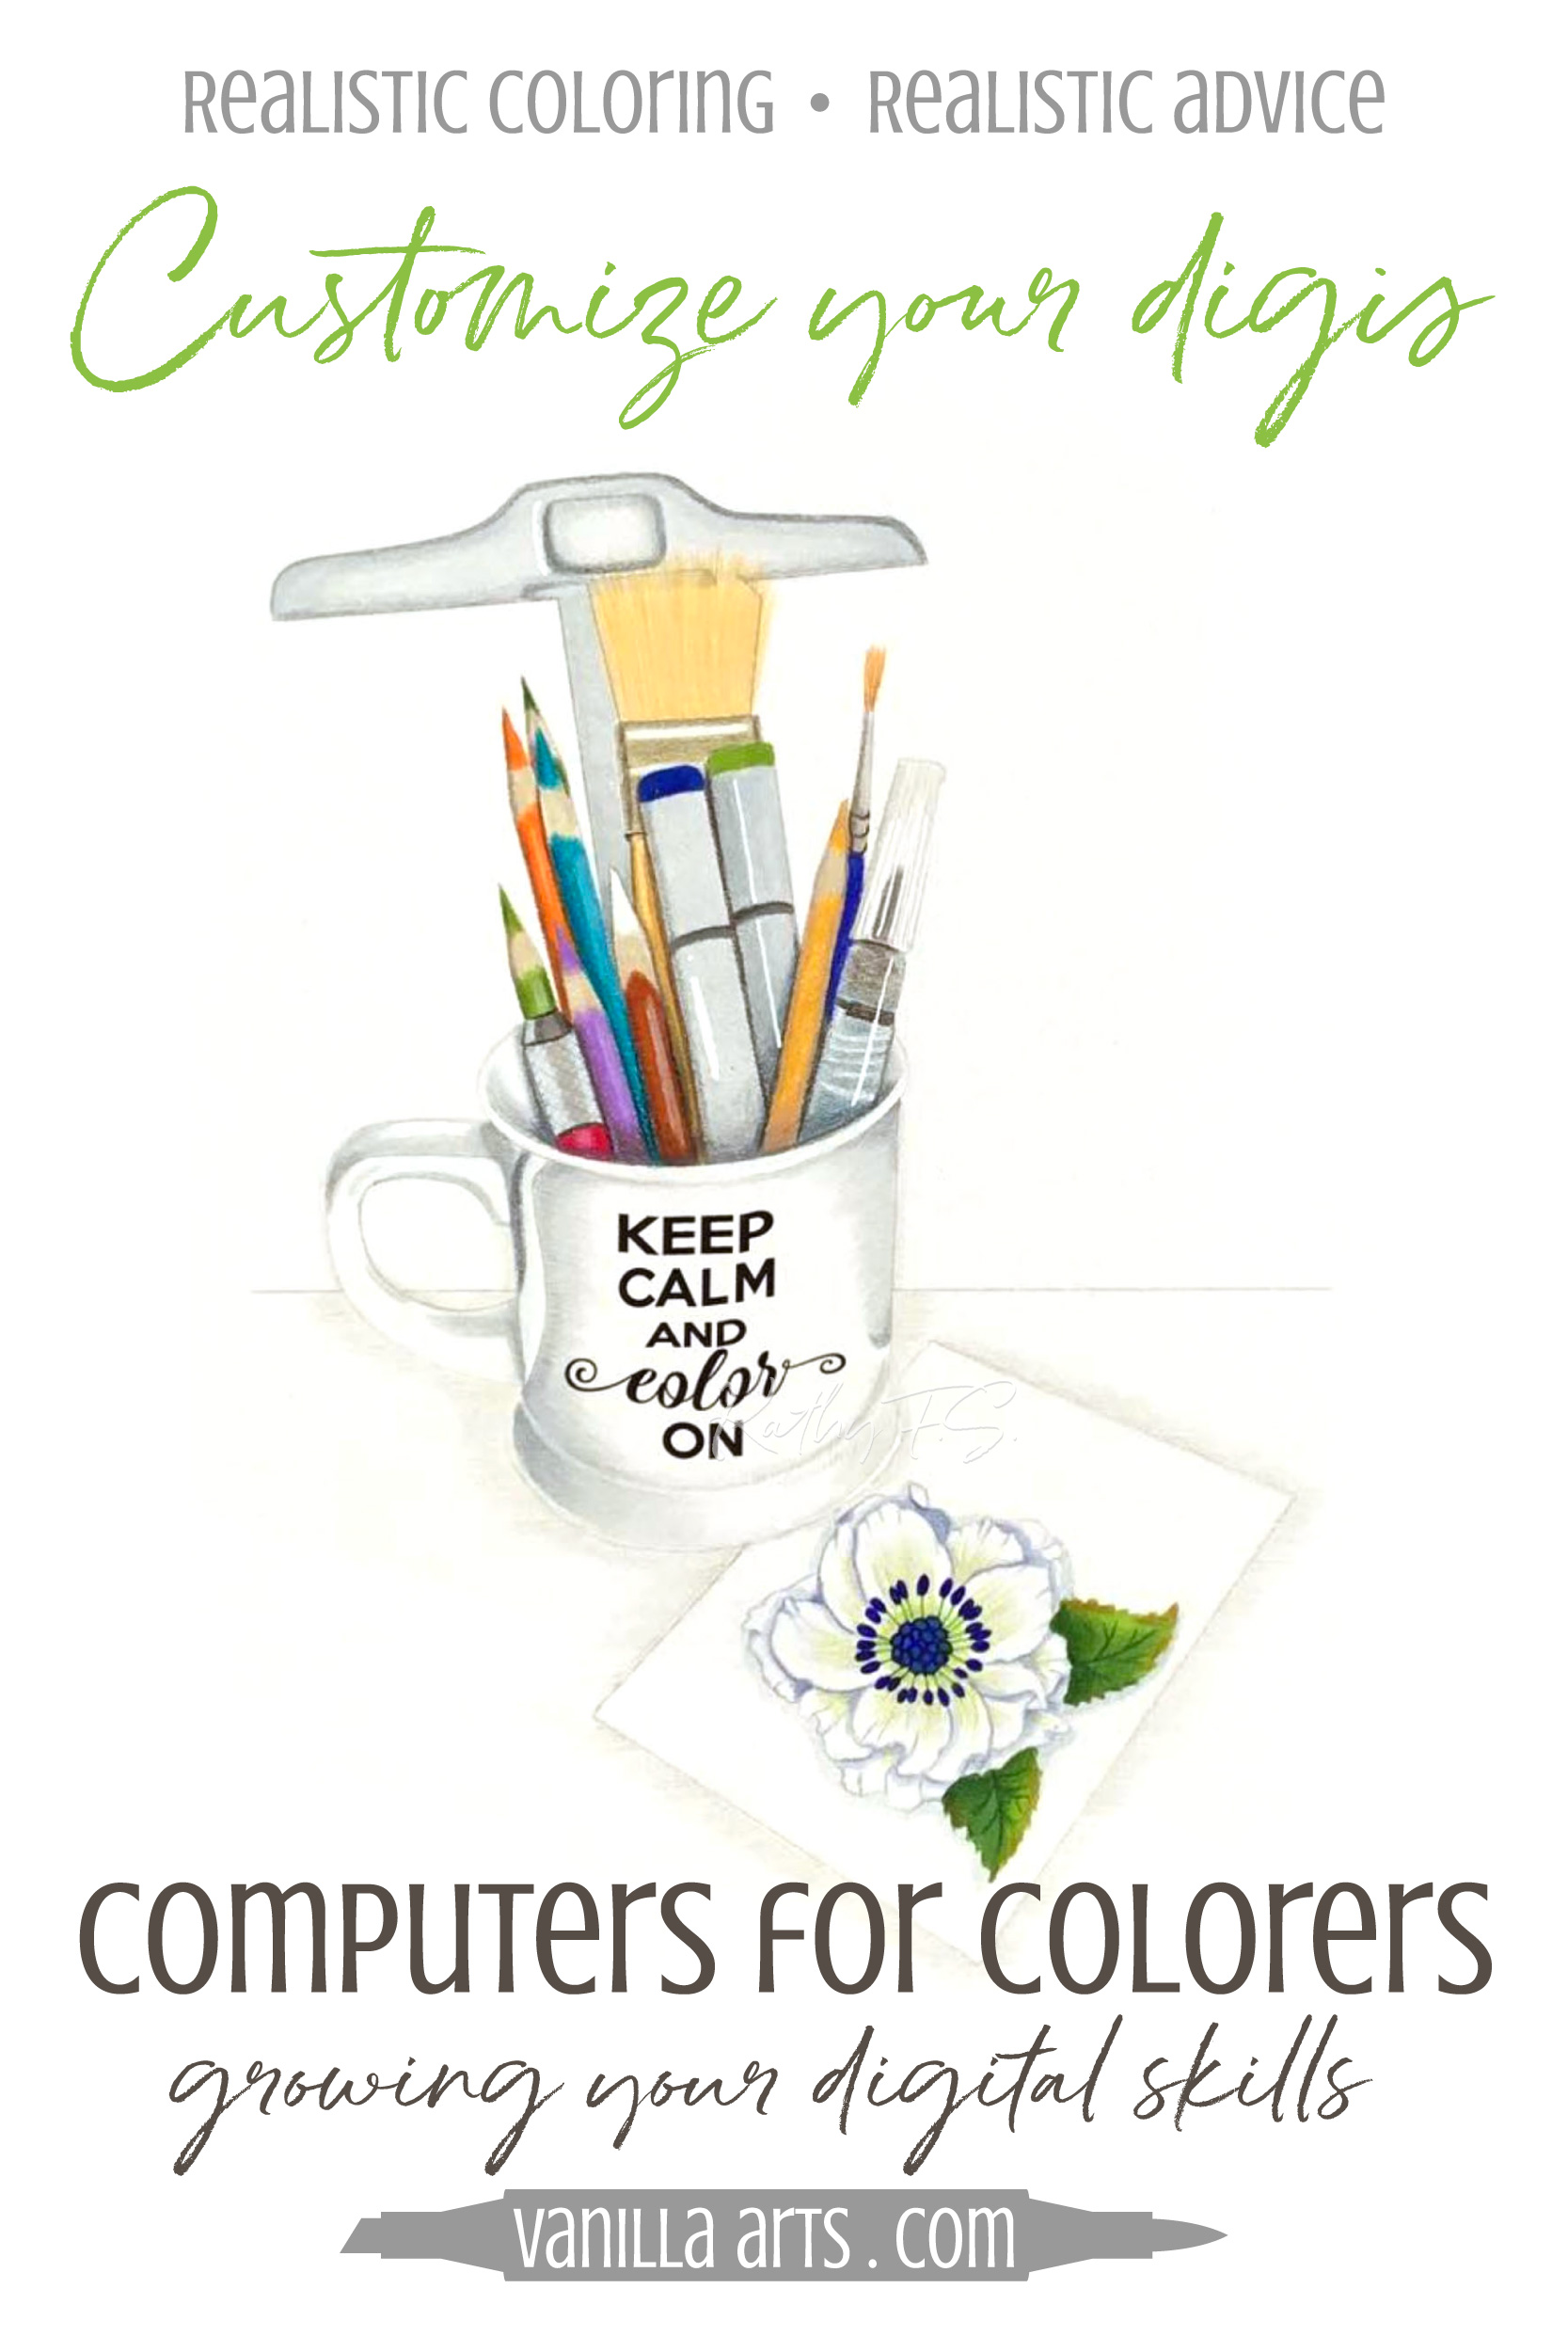 Bored with the same old coloring books or rubber stamps? Do you dream of coloring unique and custom projects with Copic Markers, colored pencils, or watercolor? Let's expand your computer skills to create amazing digital stamp projects. Computers for Colorers teaches you step by step! | VanillaArts.com | #digitalstamp #howtocolor #copicmarker